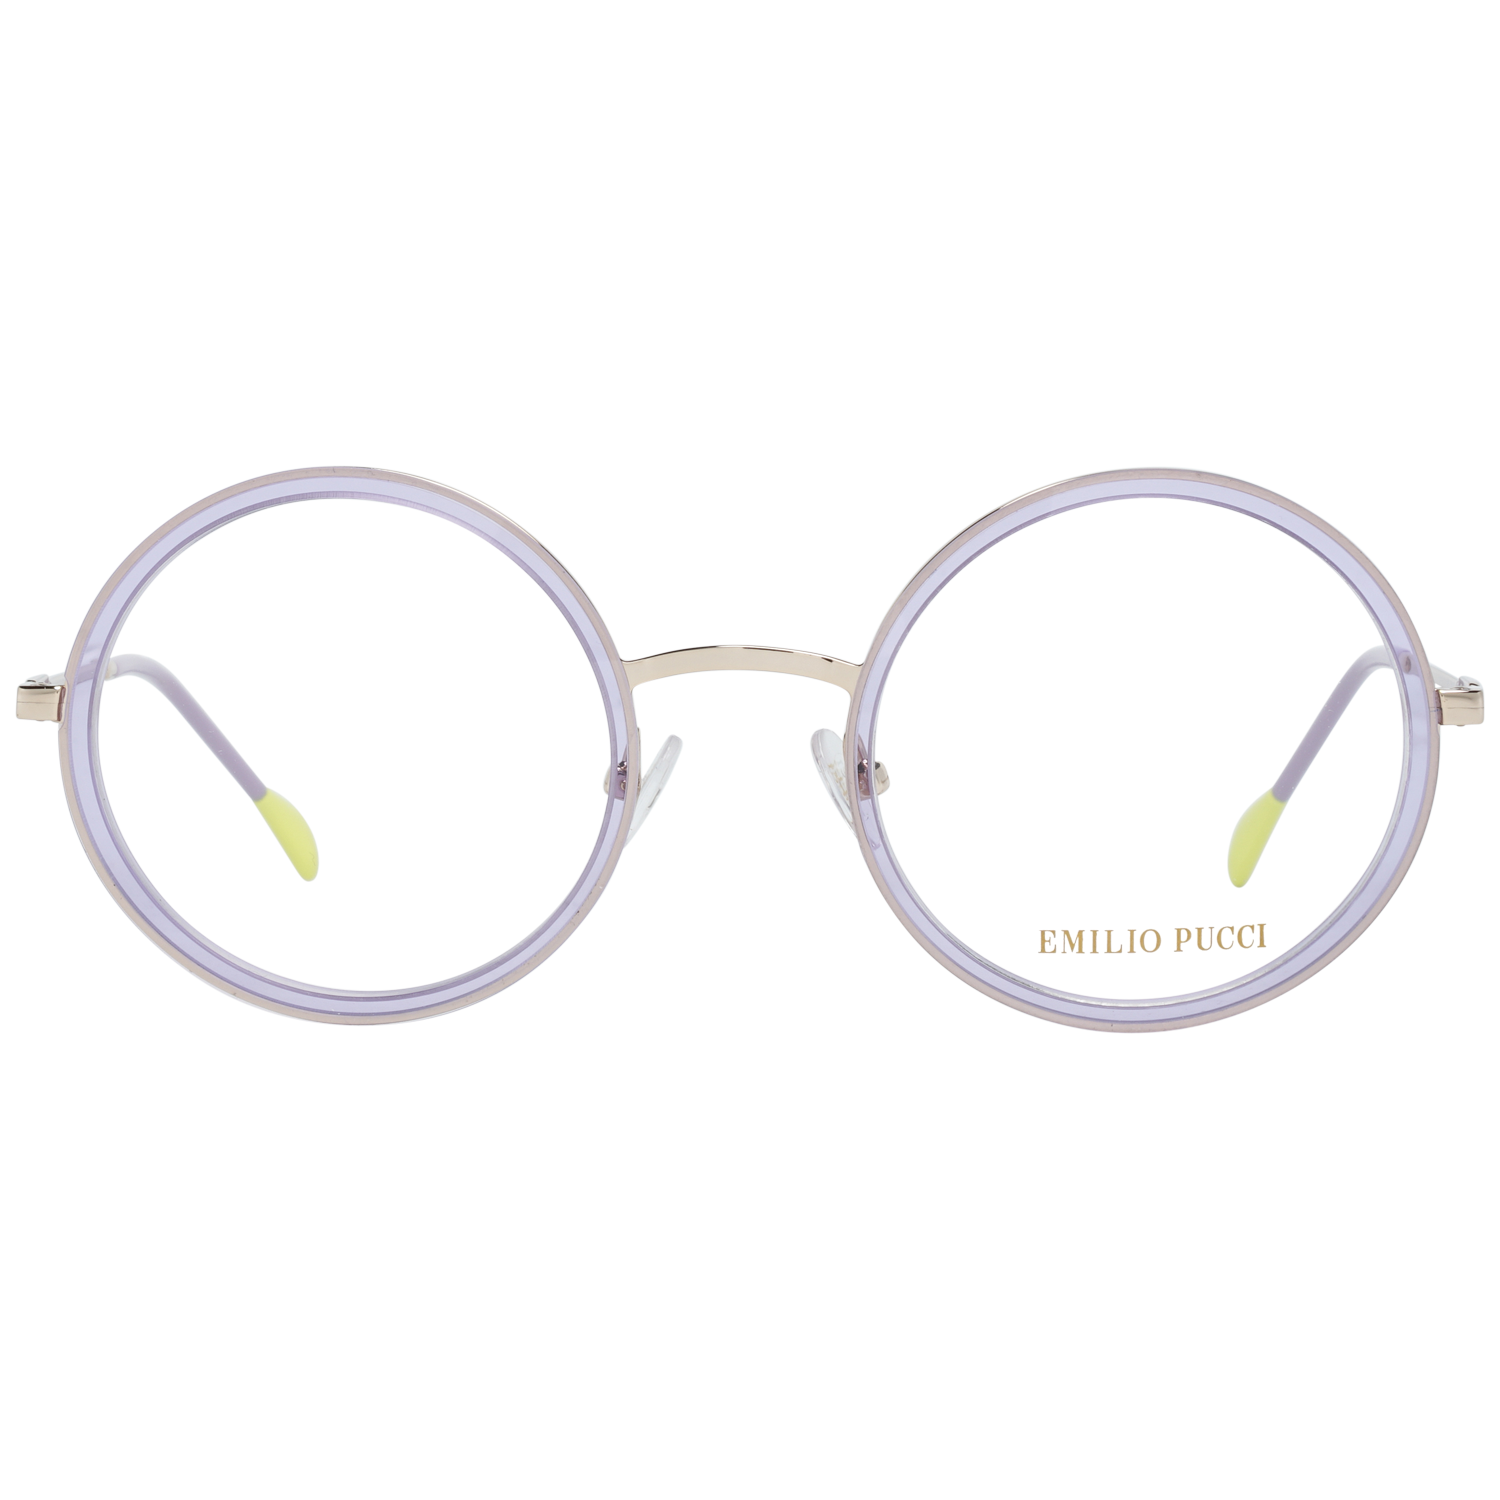 Emilio Pucci Optical Frame EP5113 080 49 Women Purple